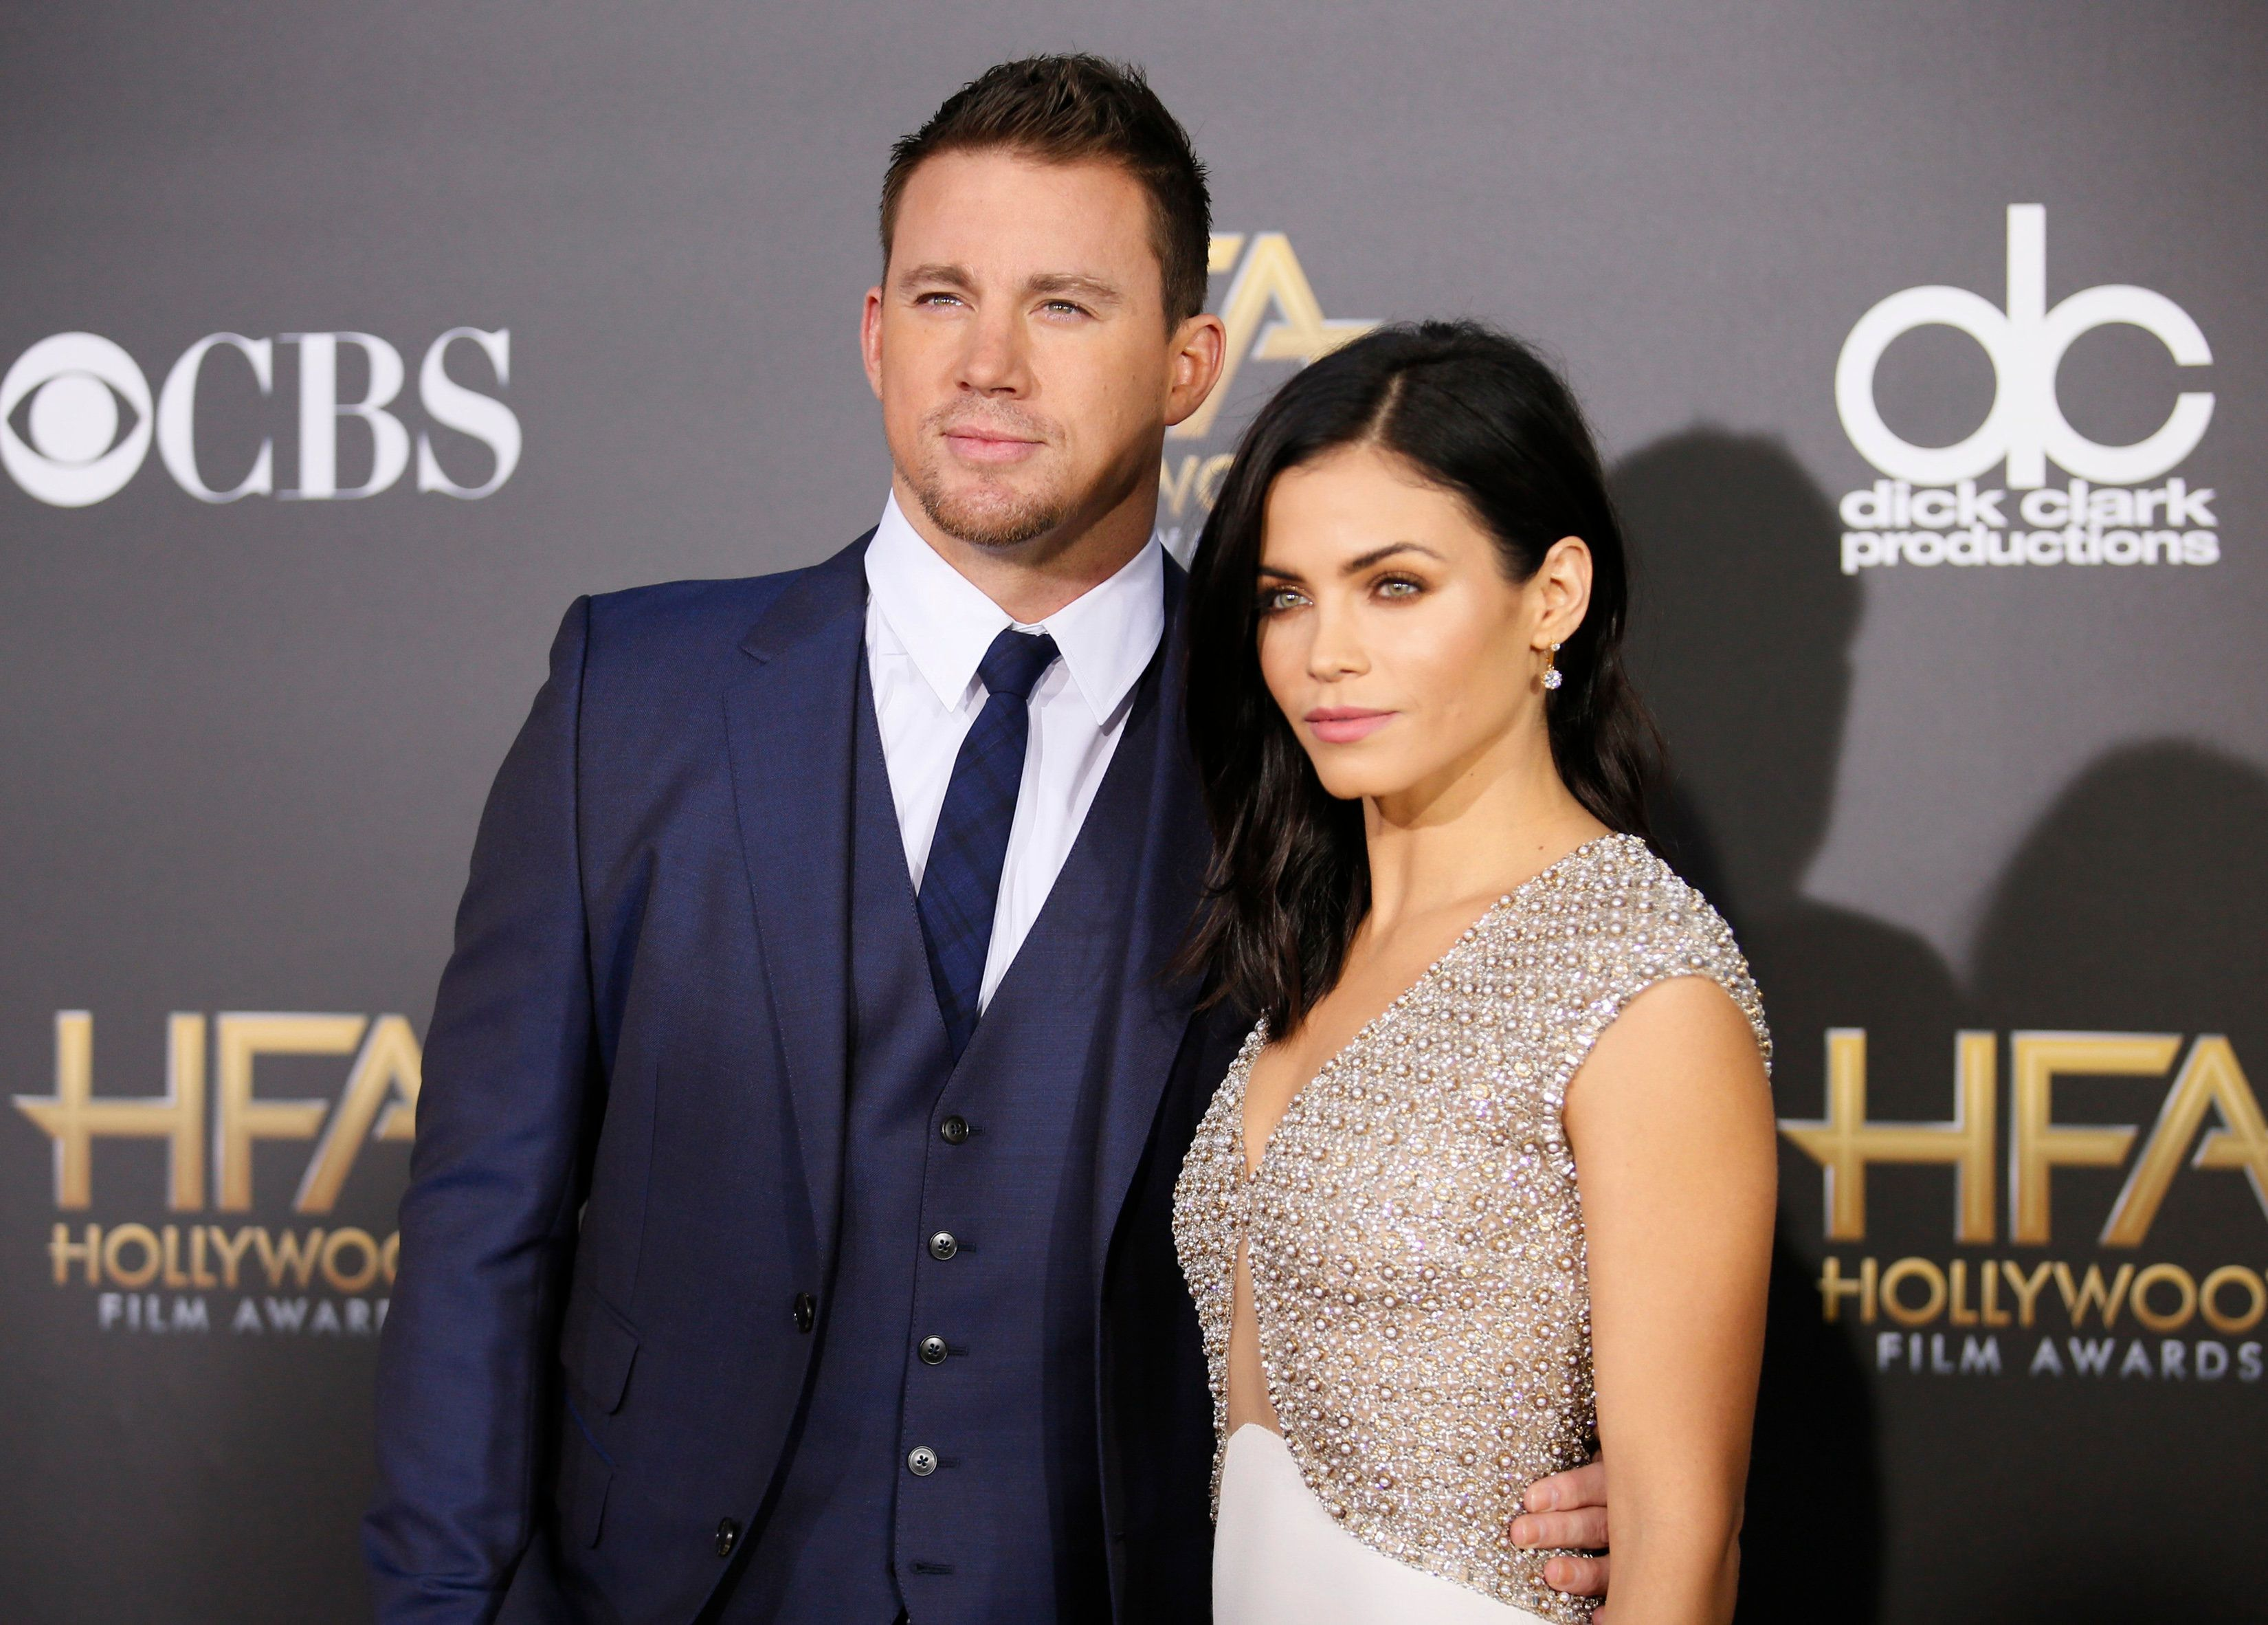 Actor Channing Tatum arrives with his wife Jenna at the Hollywood Film Awards in Hollywood, California November 14, 2014.    REUTERS/Danny Moloshok (UNITED STATES  - Tags: ENTERTAINMENT)